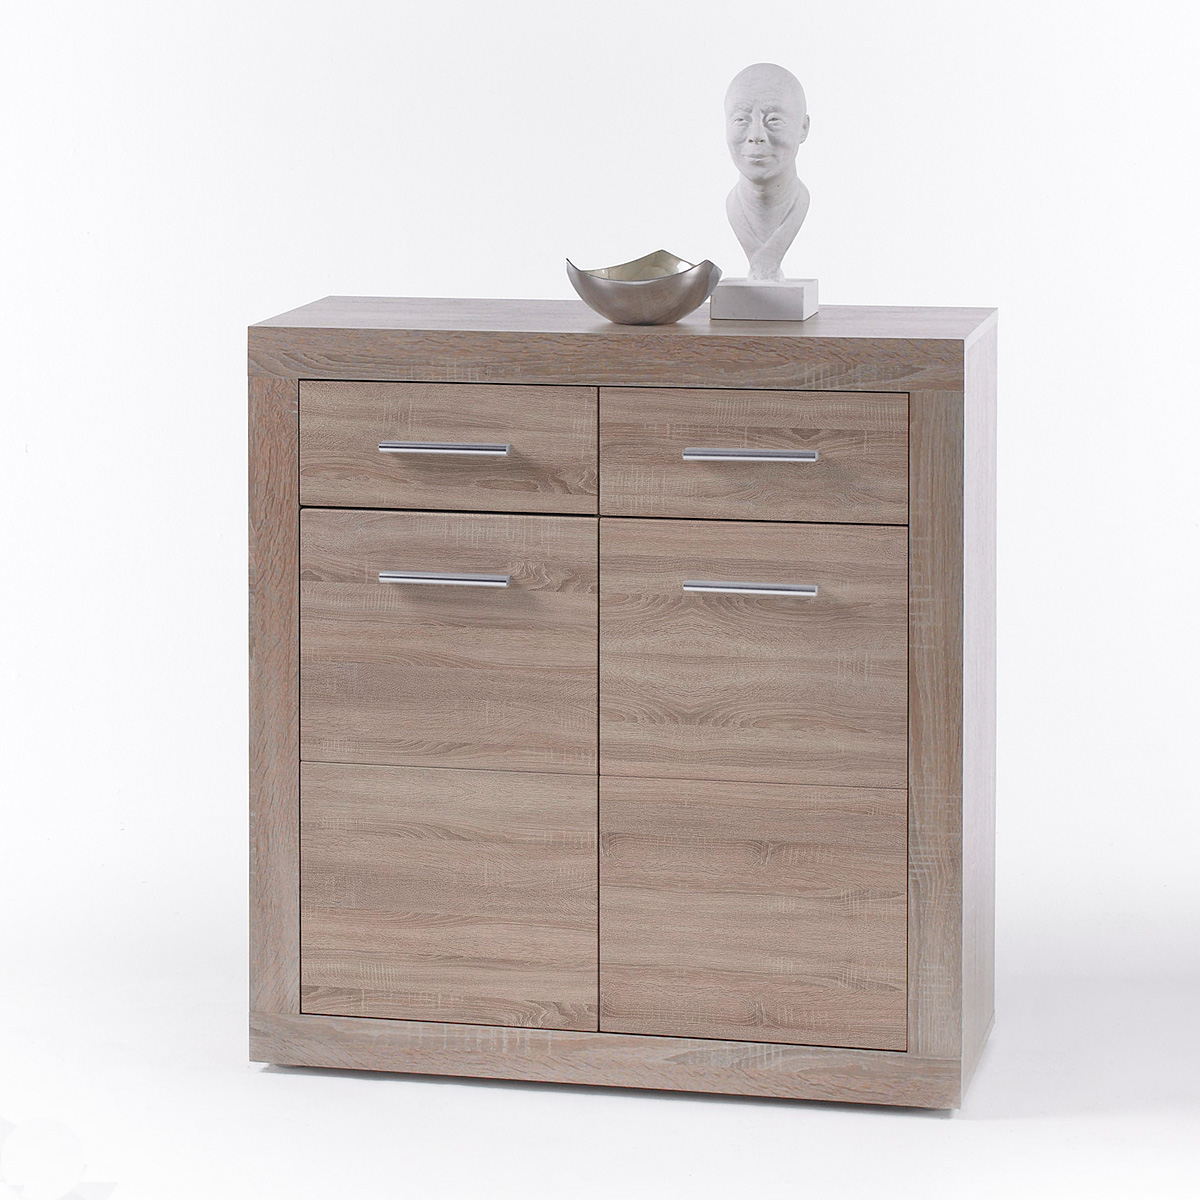 kommode cancan 1 sideboard highboard sonoma eiche s gerau neu ebay. Black Bedroom Furniture Sets. Home Design Ideas